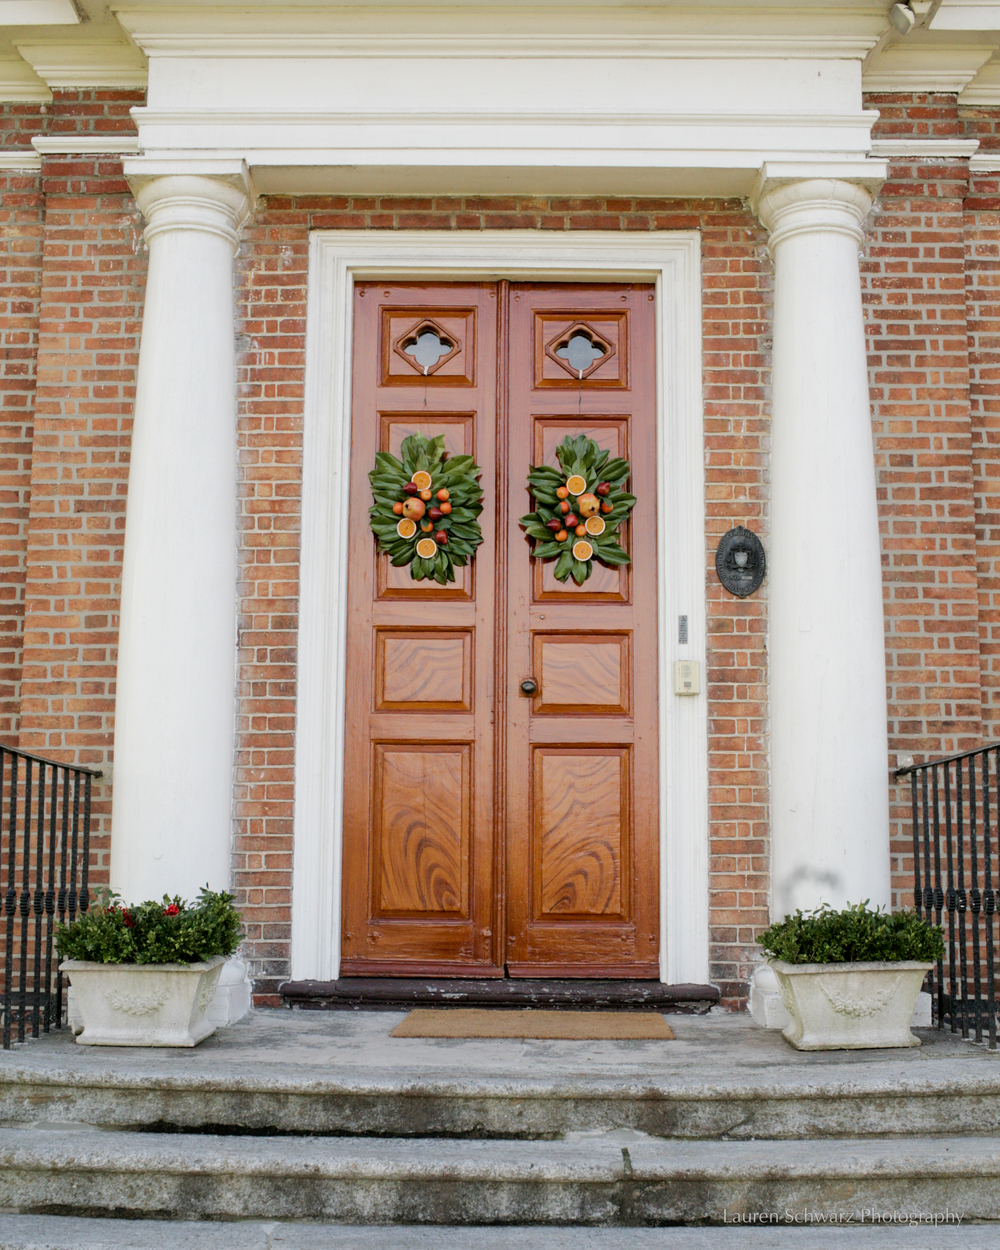 Doors welcoming guests into Woodford